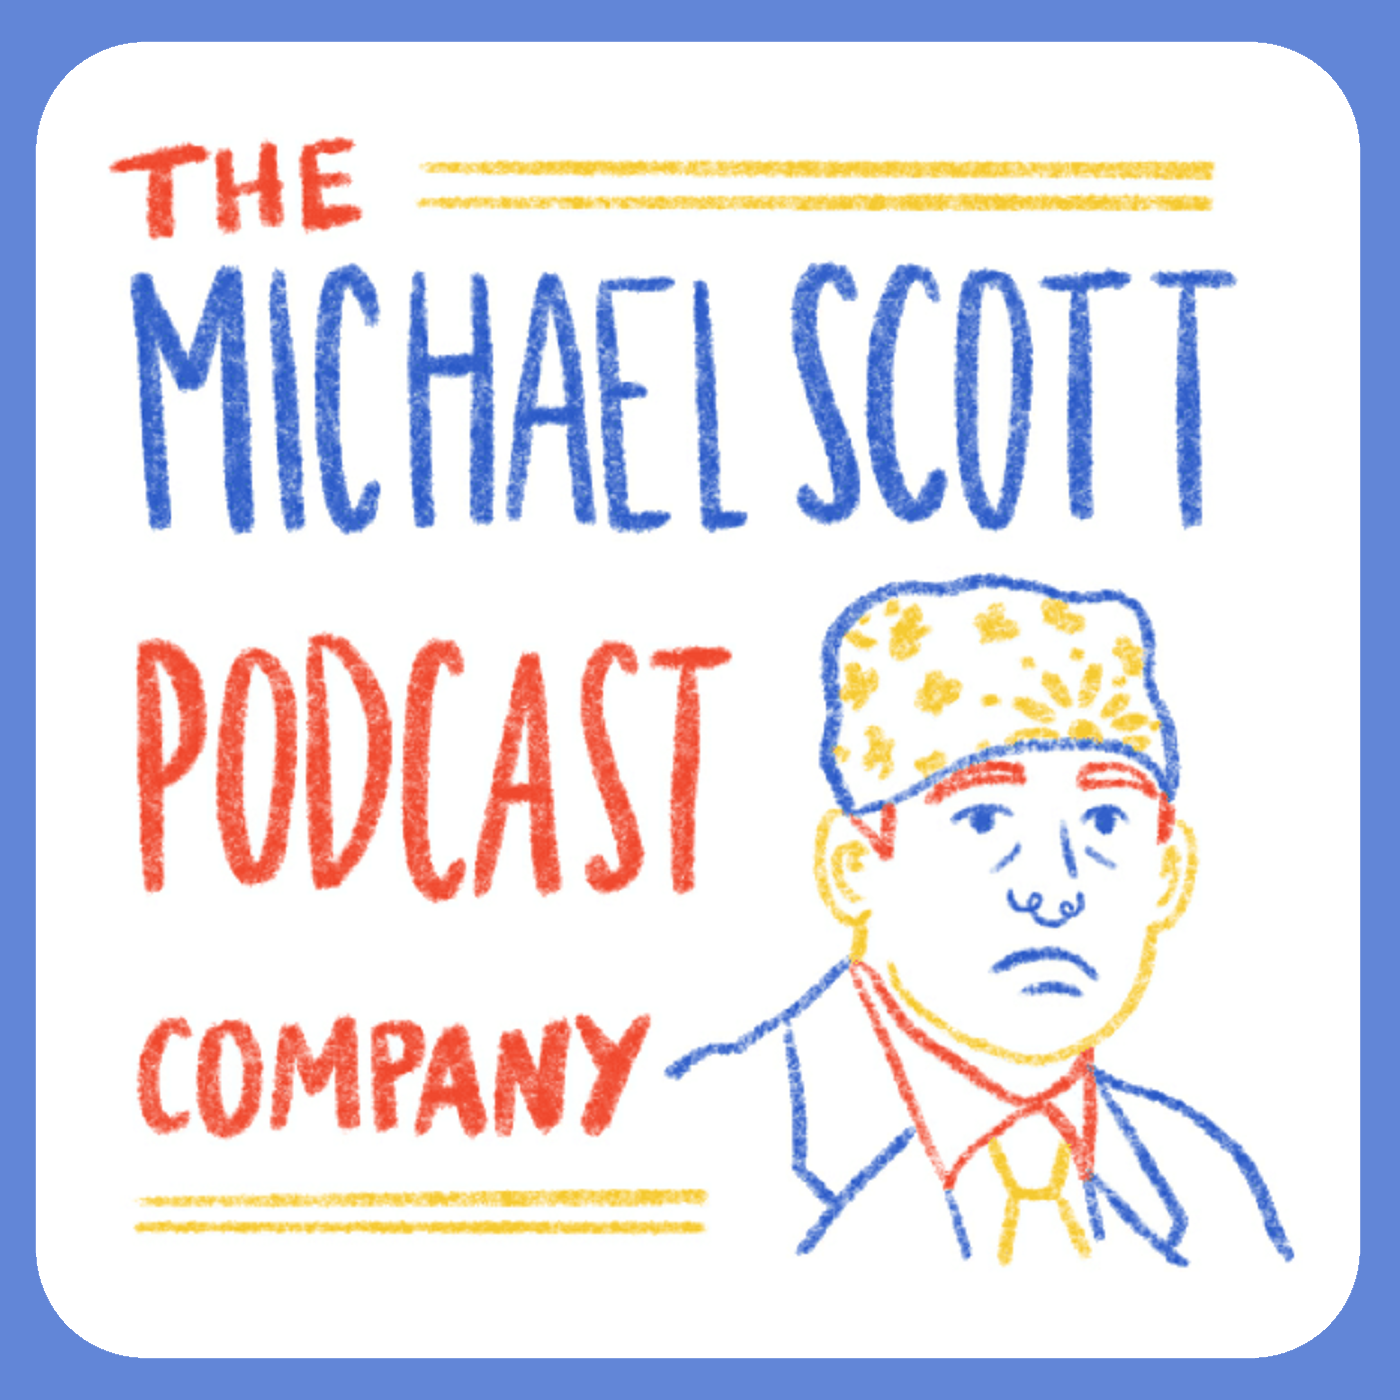 1: The Michael Scott Paper Company